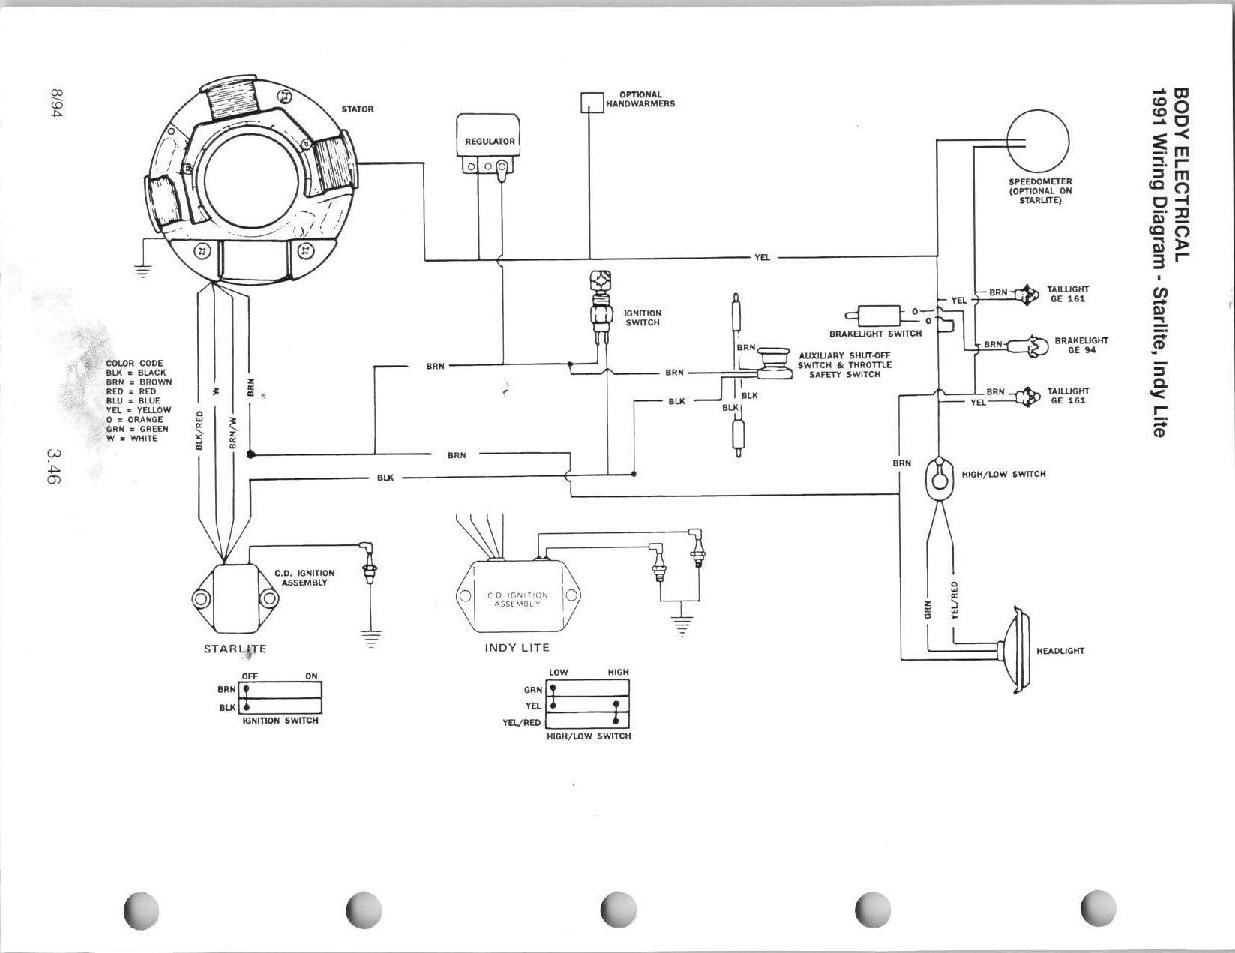 hight resolution of polaris electrical diagram schematic diagram database polaris snowmobile electrical wiring diagrams polaris electrical diagram